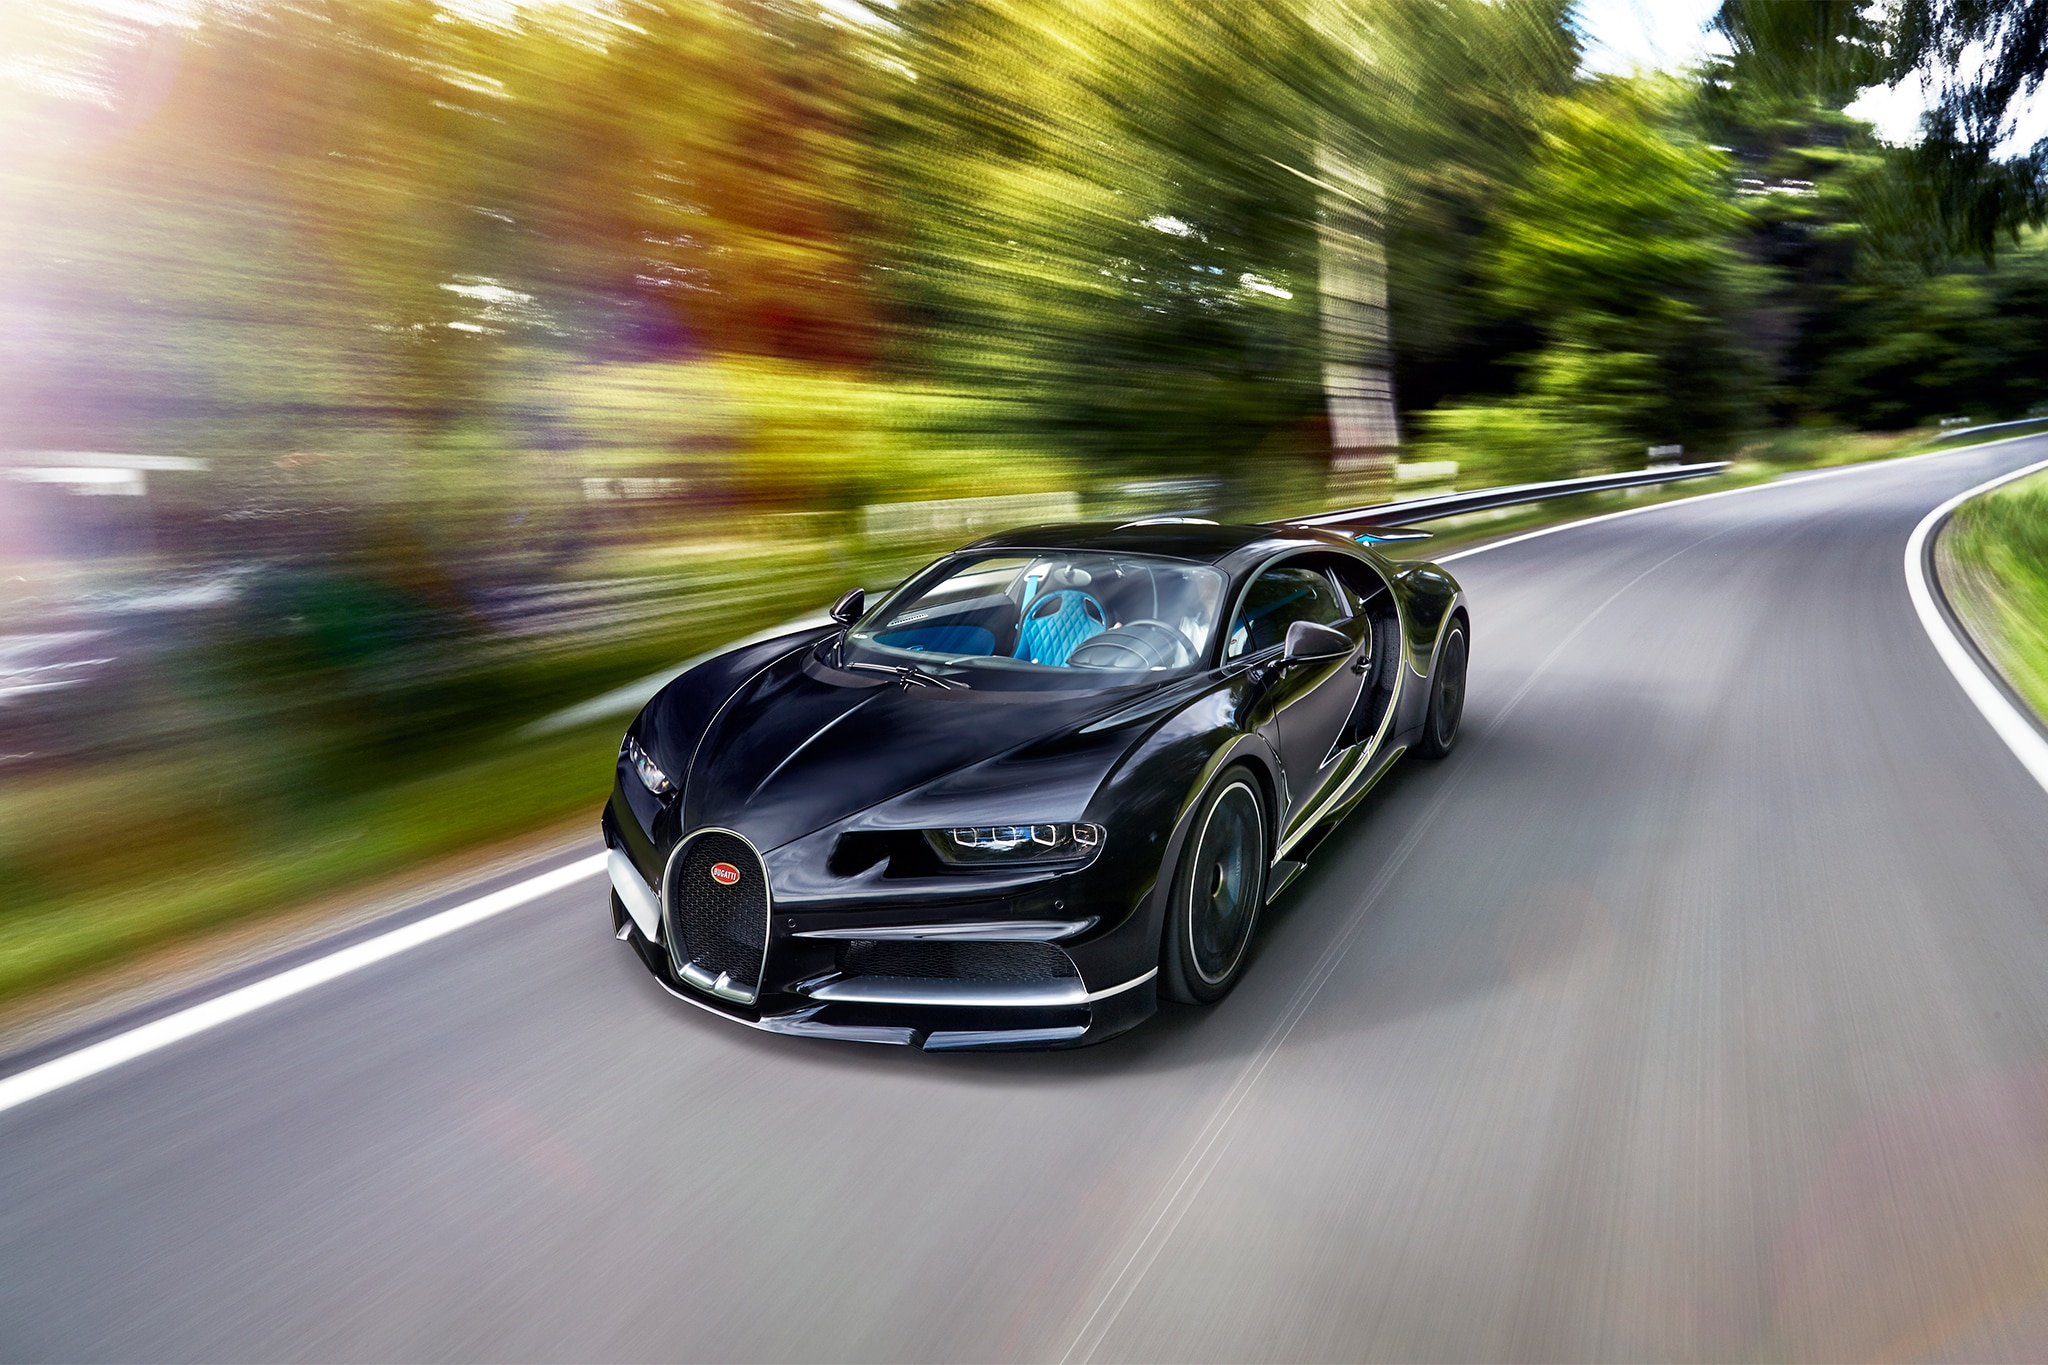 2017-Bugatti-Chiron-front-three-quarter-in-motion-04 Cozy Bugatti Veyron and Chiron Difference Cars Trend